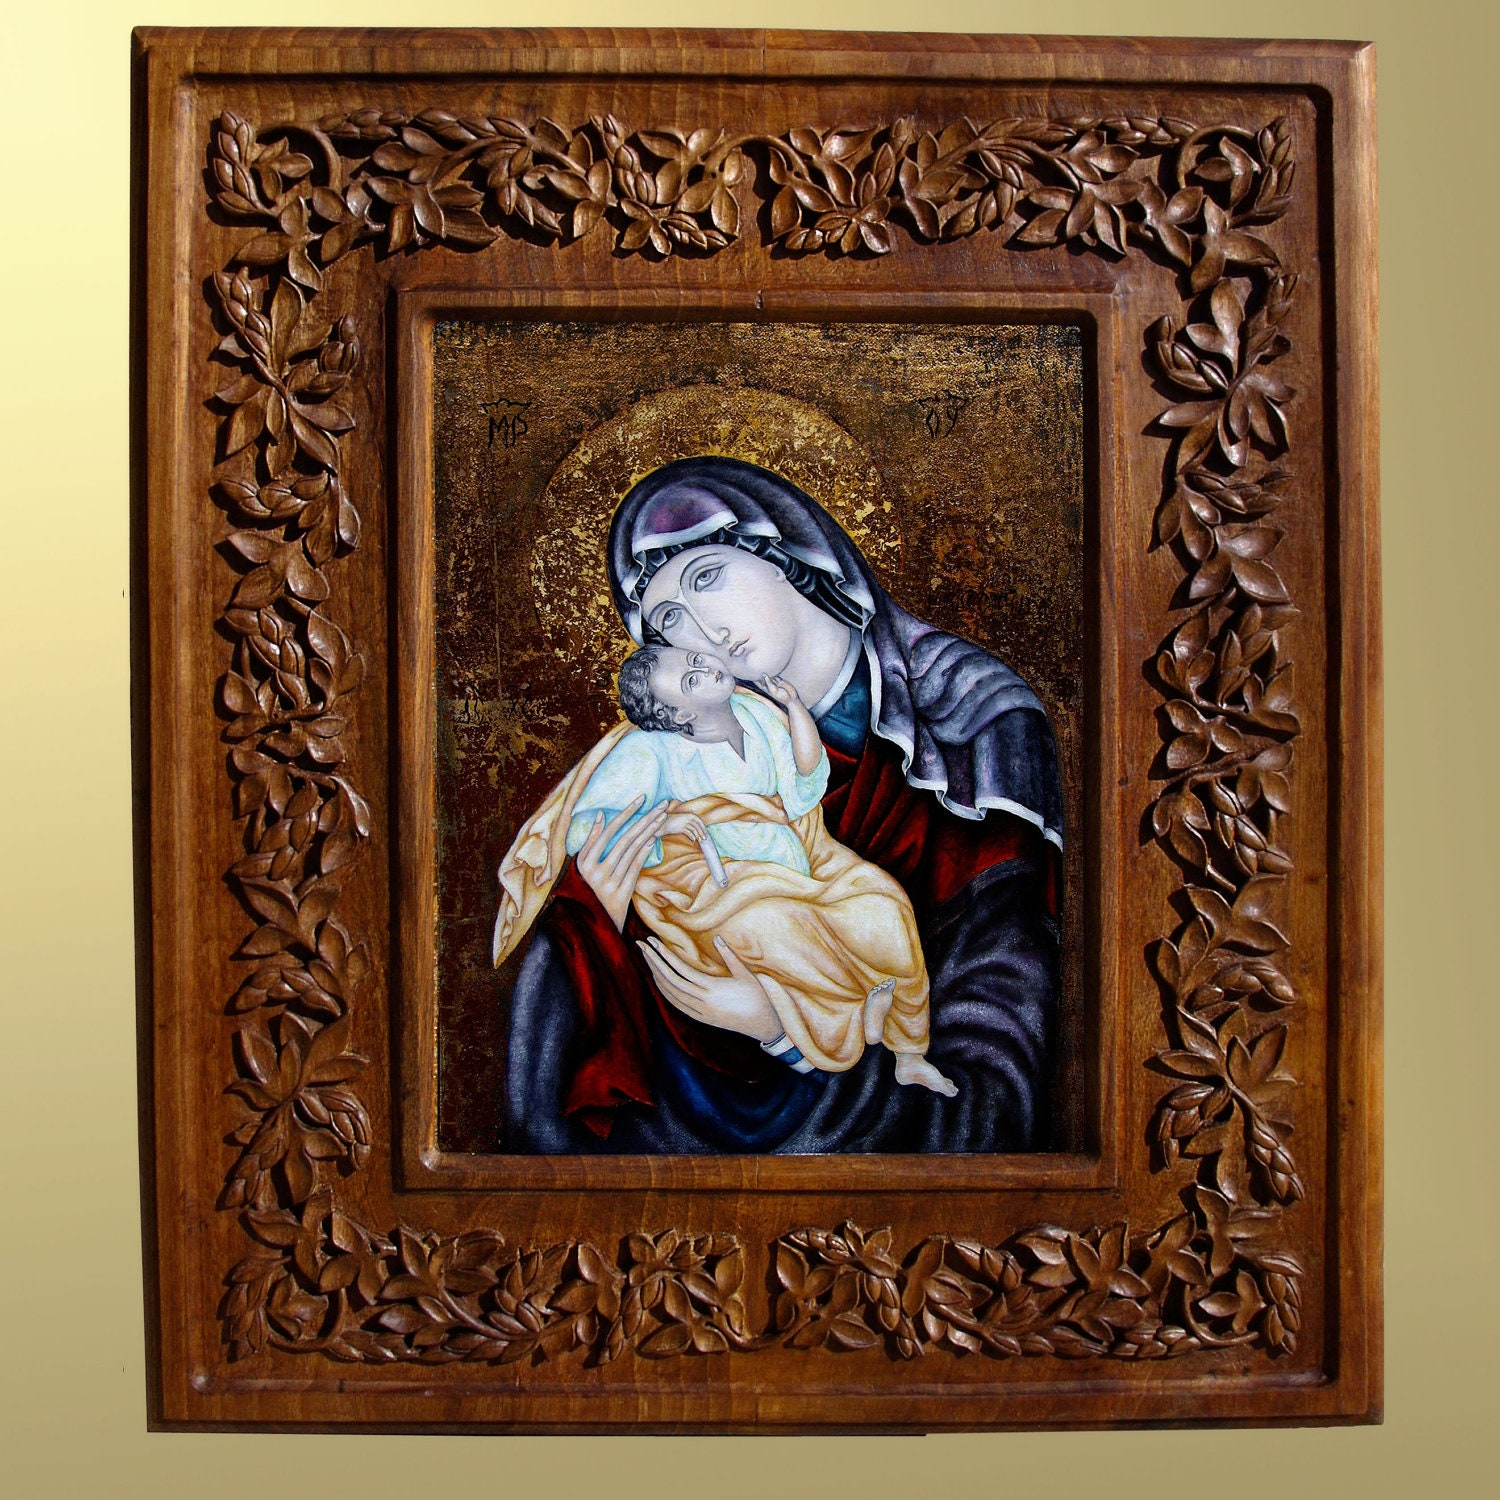 Wall Decor Jesus : Wall art wood carving virgin mary and jesus christian